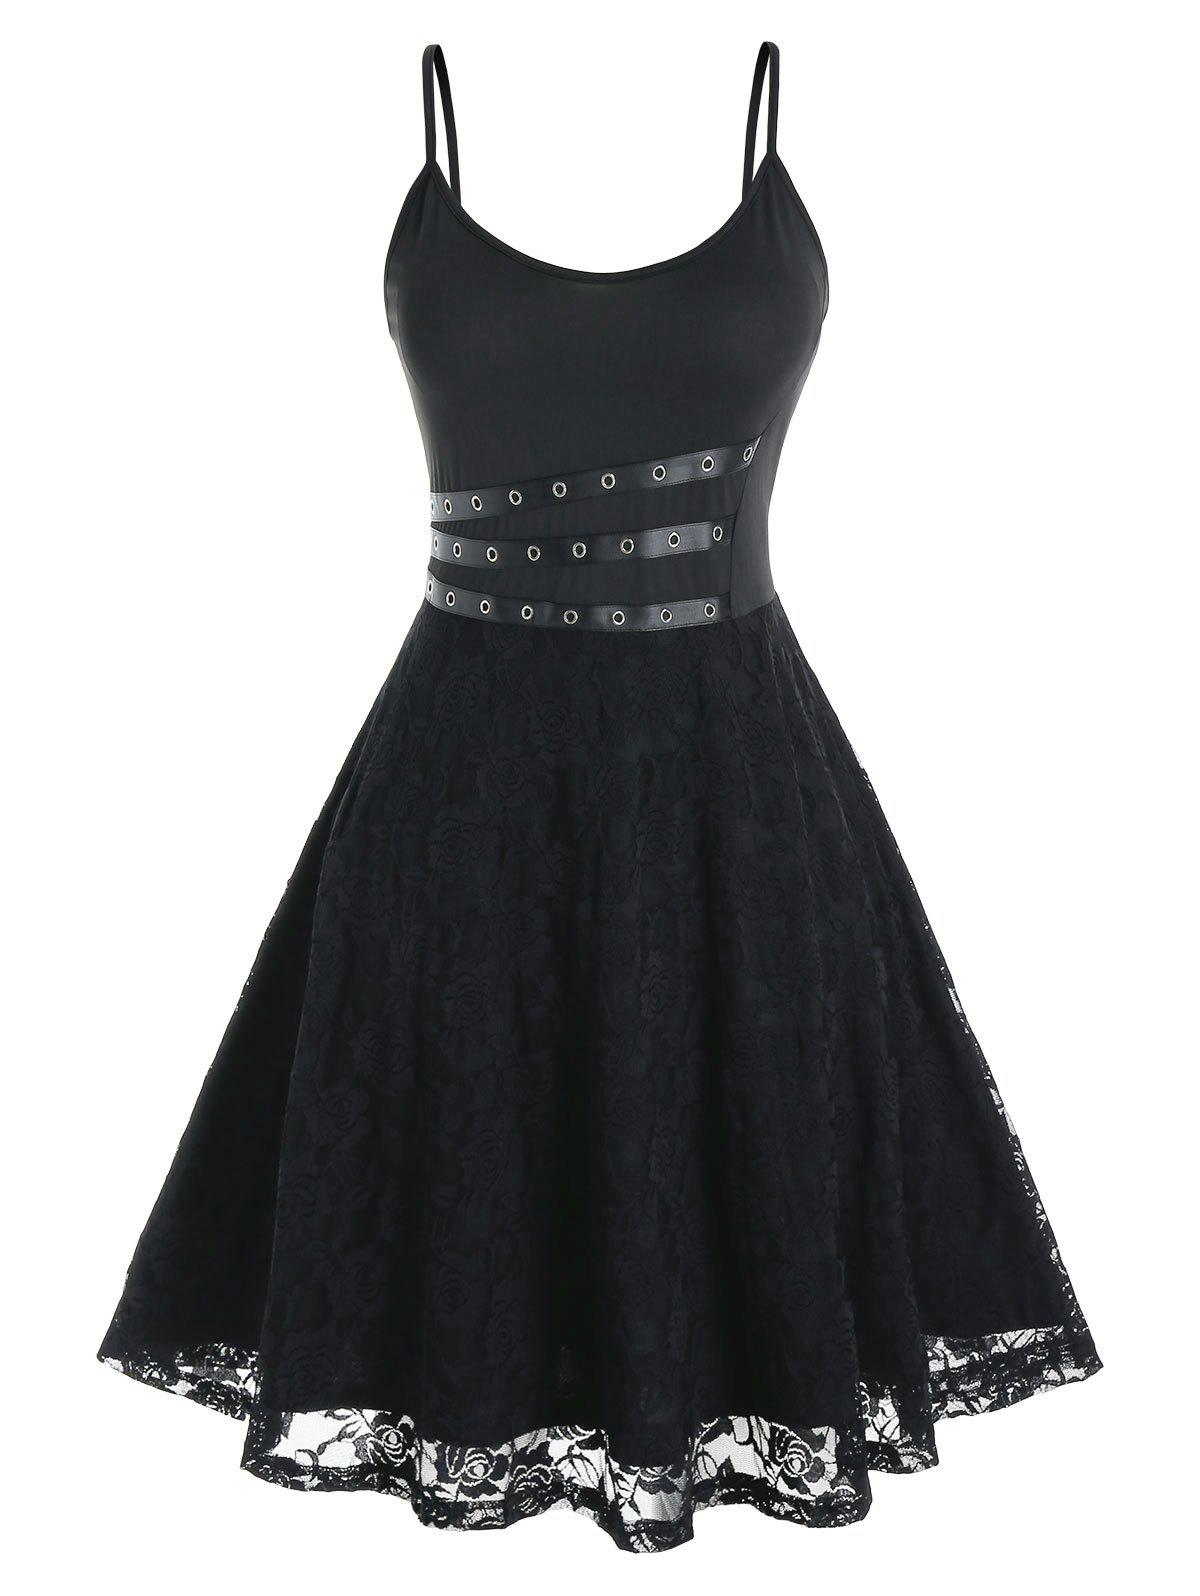 Plus Size Lace Grommet Eyelet Cami Dress - BLACK 4X